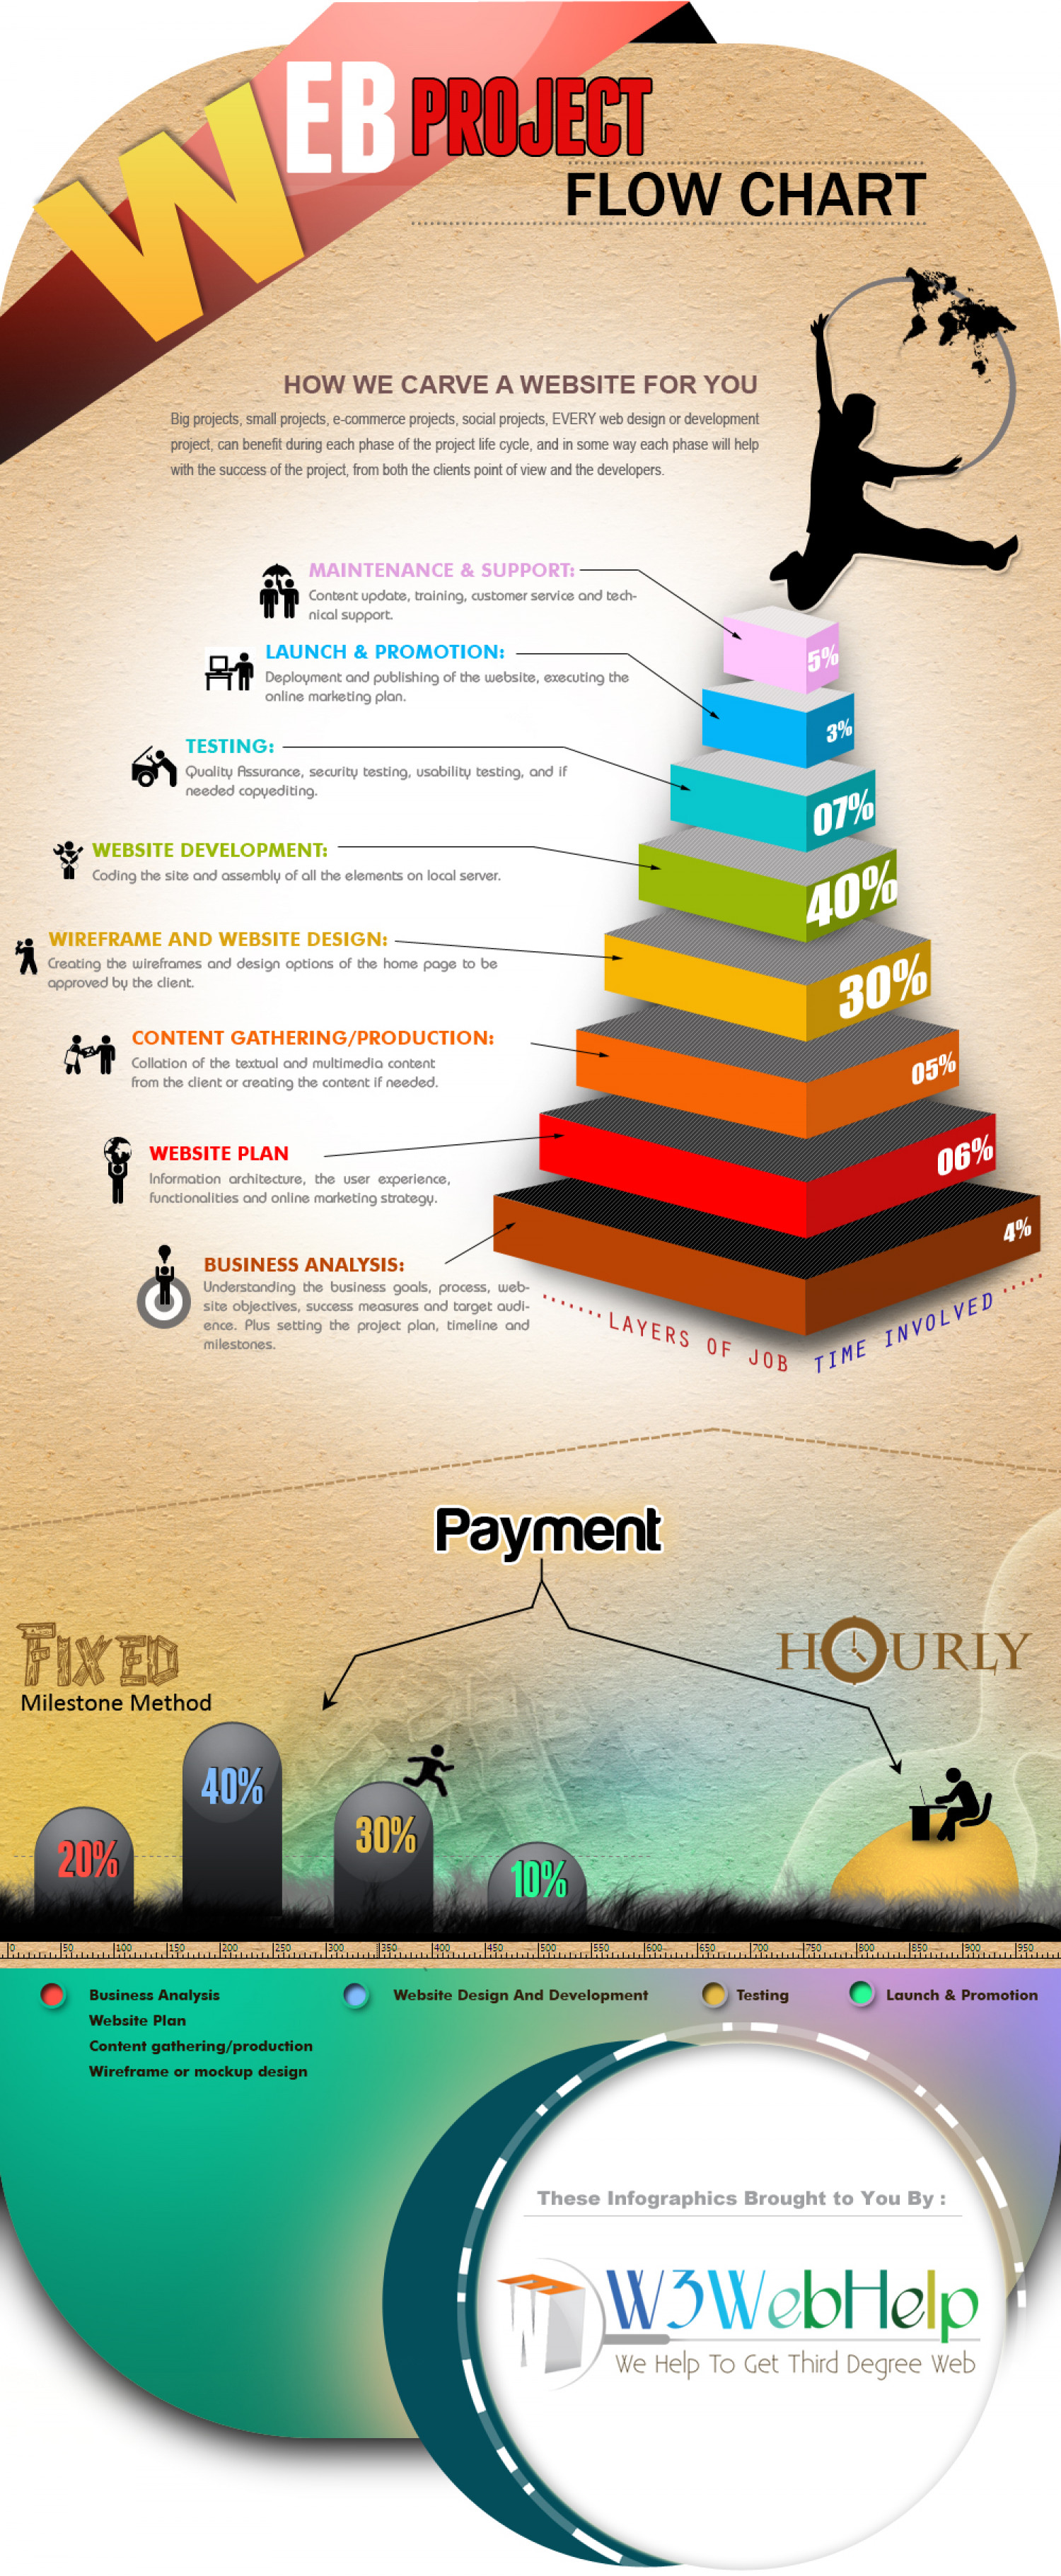 Web Project Infographic